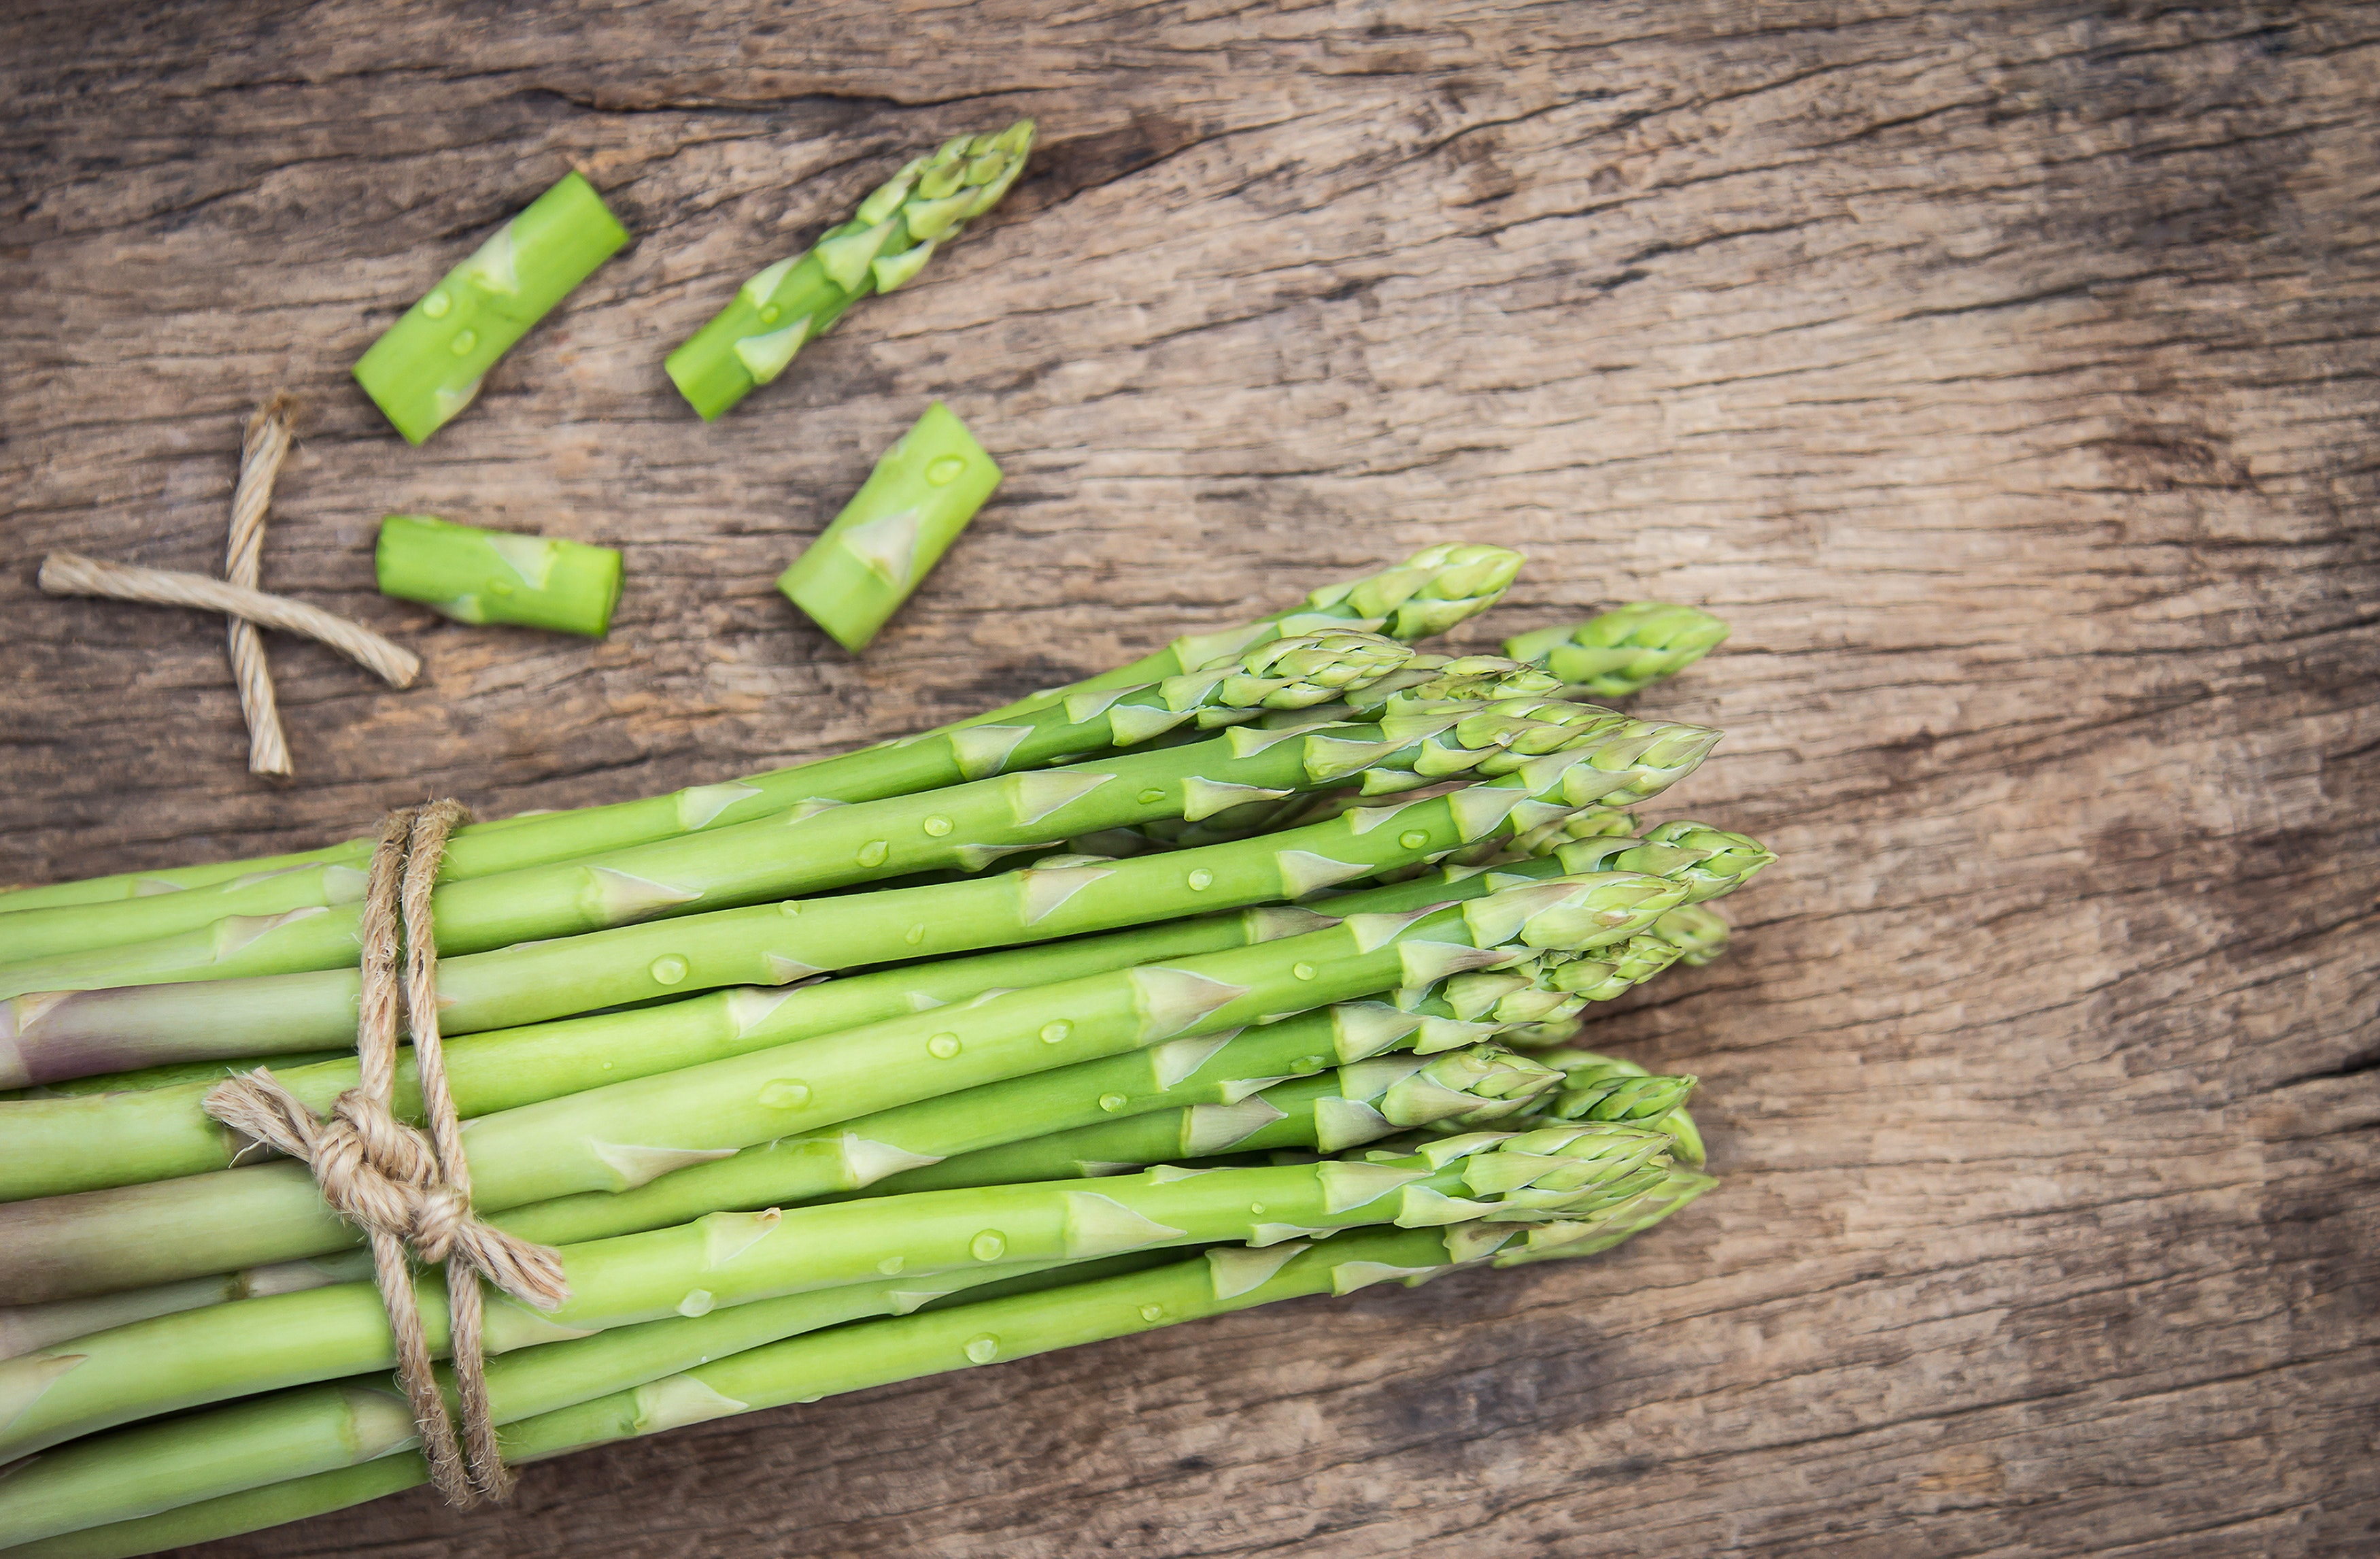 Asparagus bundle. Source: Pexels.